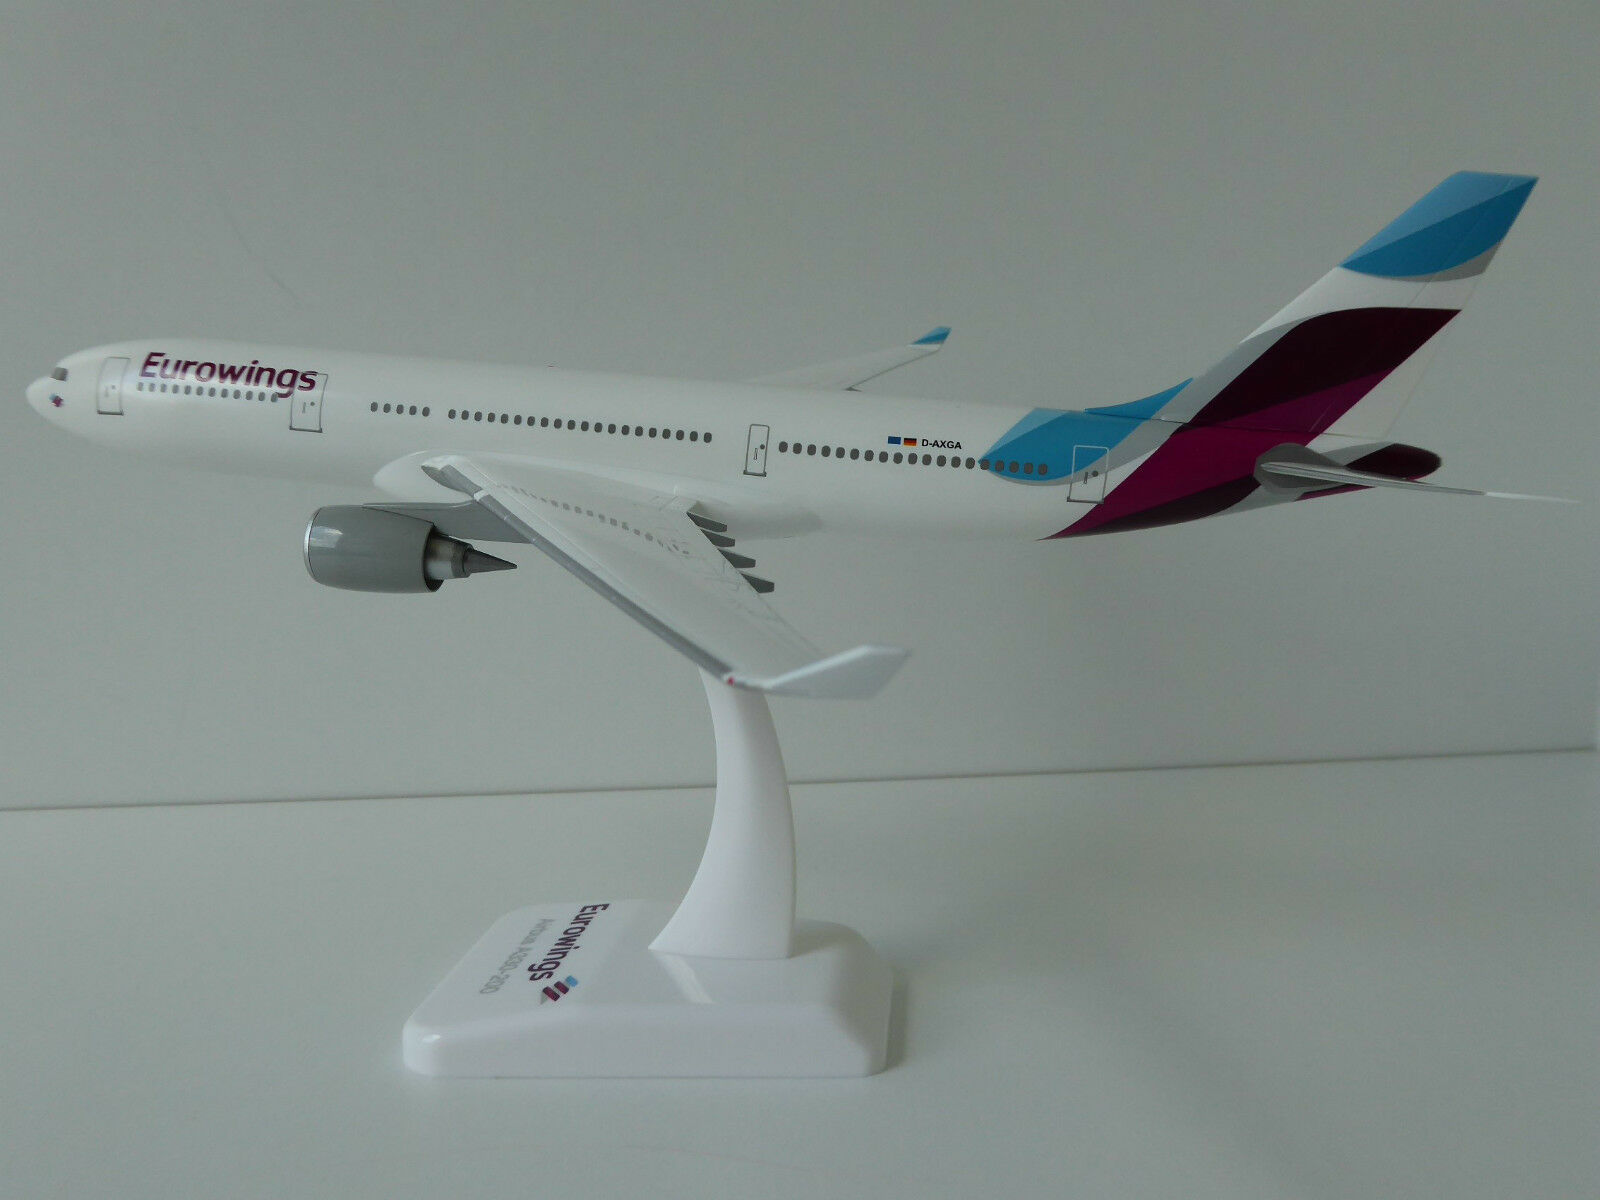 Eurowings Airbus a330-200 1 200 NEW COLOURS LIMOX Wings ew03 a330 A 330 D-axga